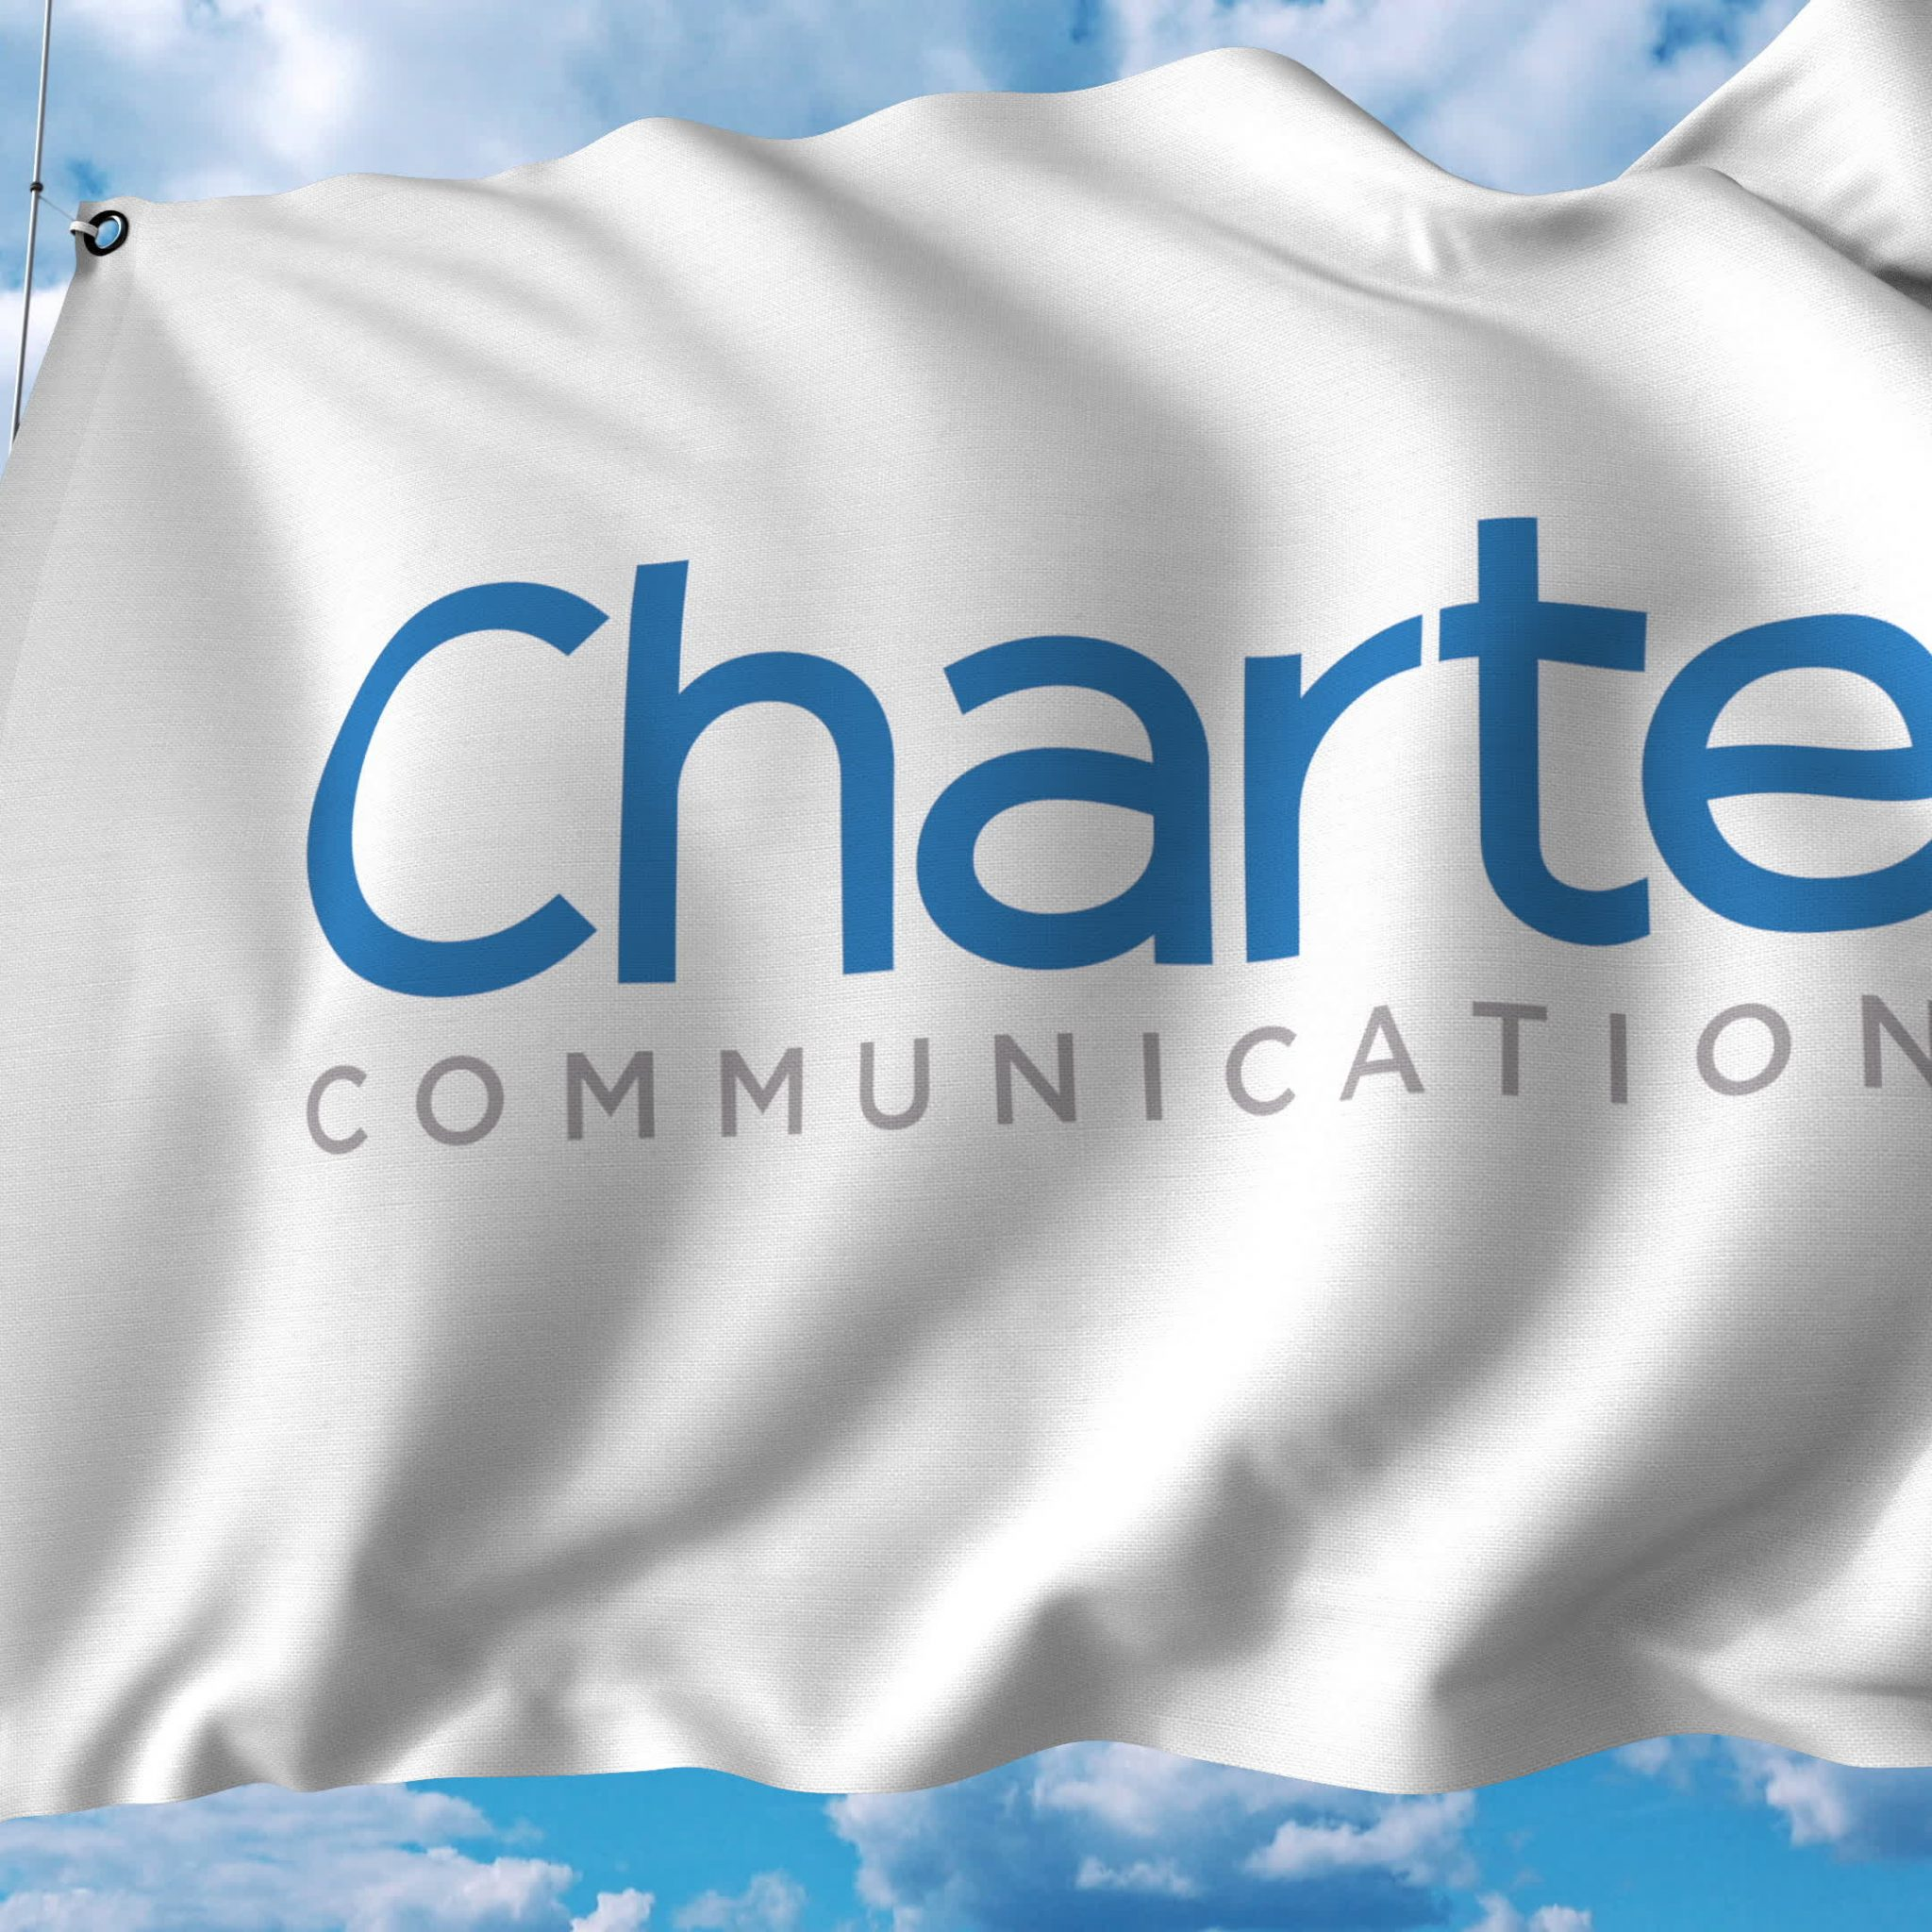 Charter Communications to launch mobile services by mid-year: CEO